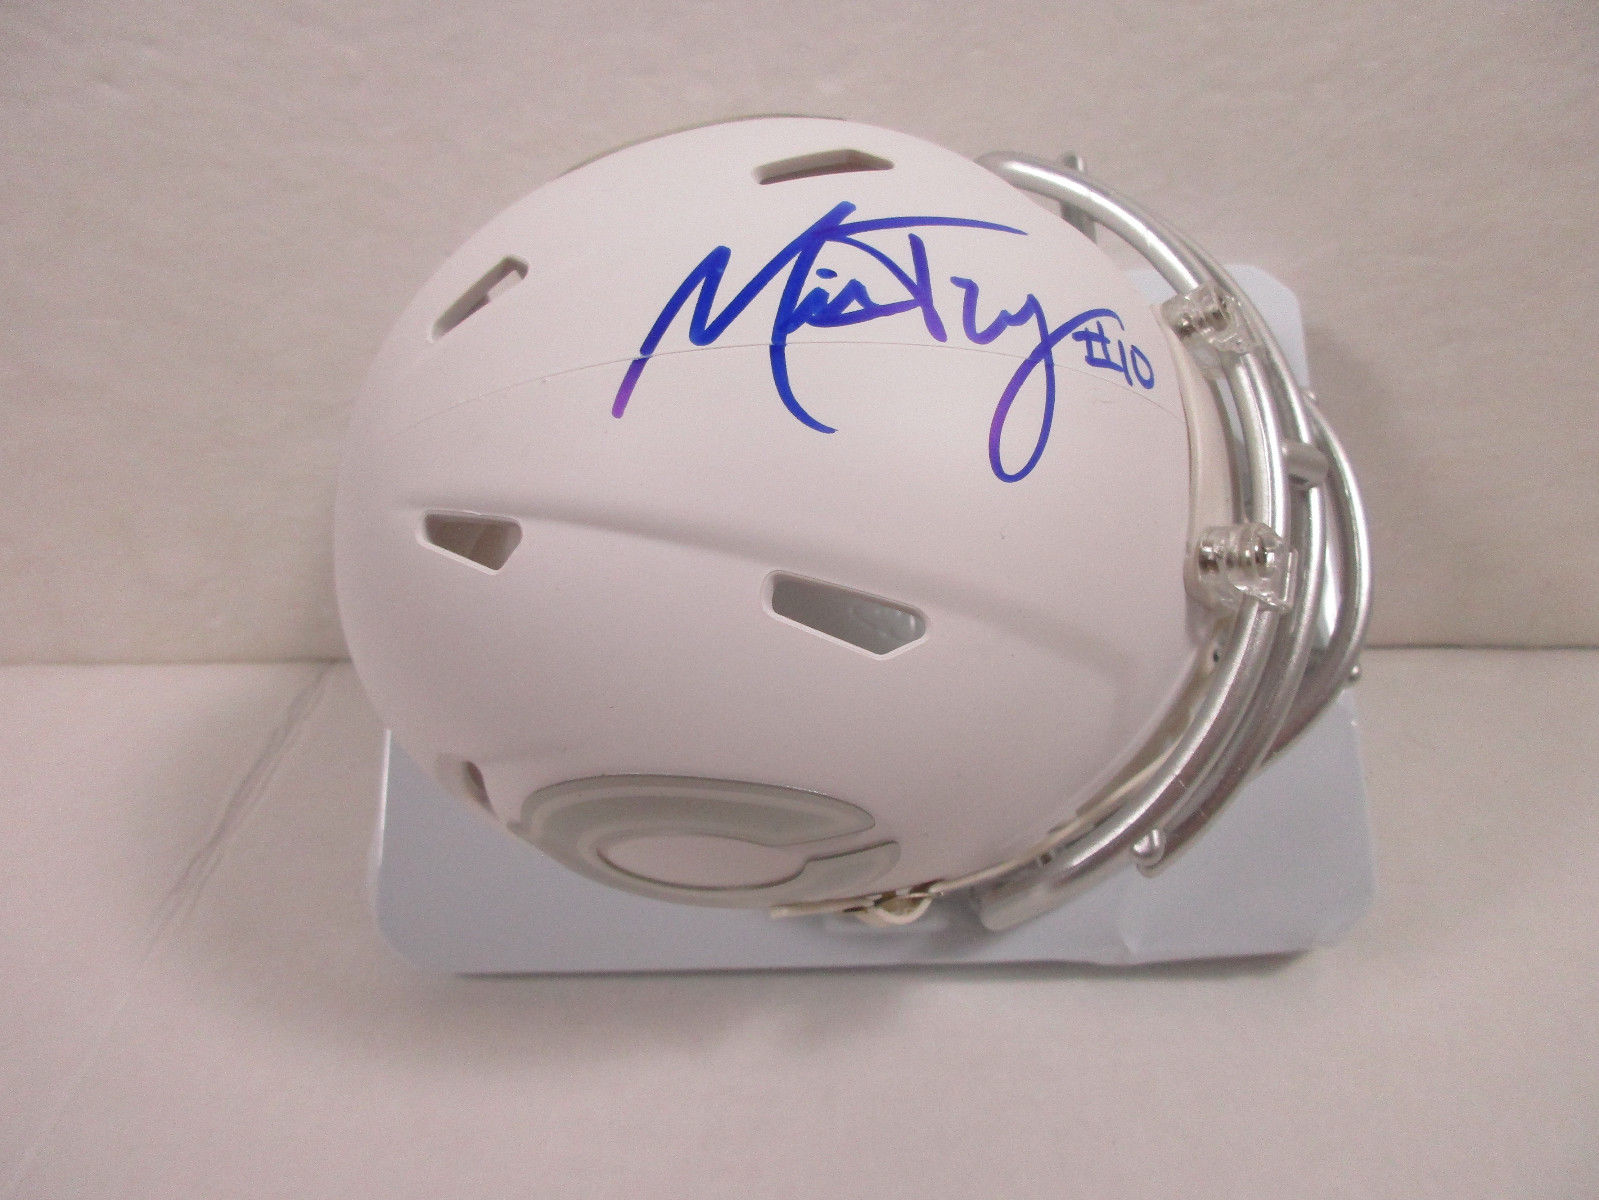 Mitch Trubisky Chicago Bears Signed Limited Edition Ice Speed Mini Helmet / COA